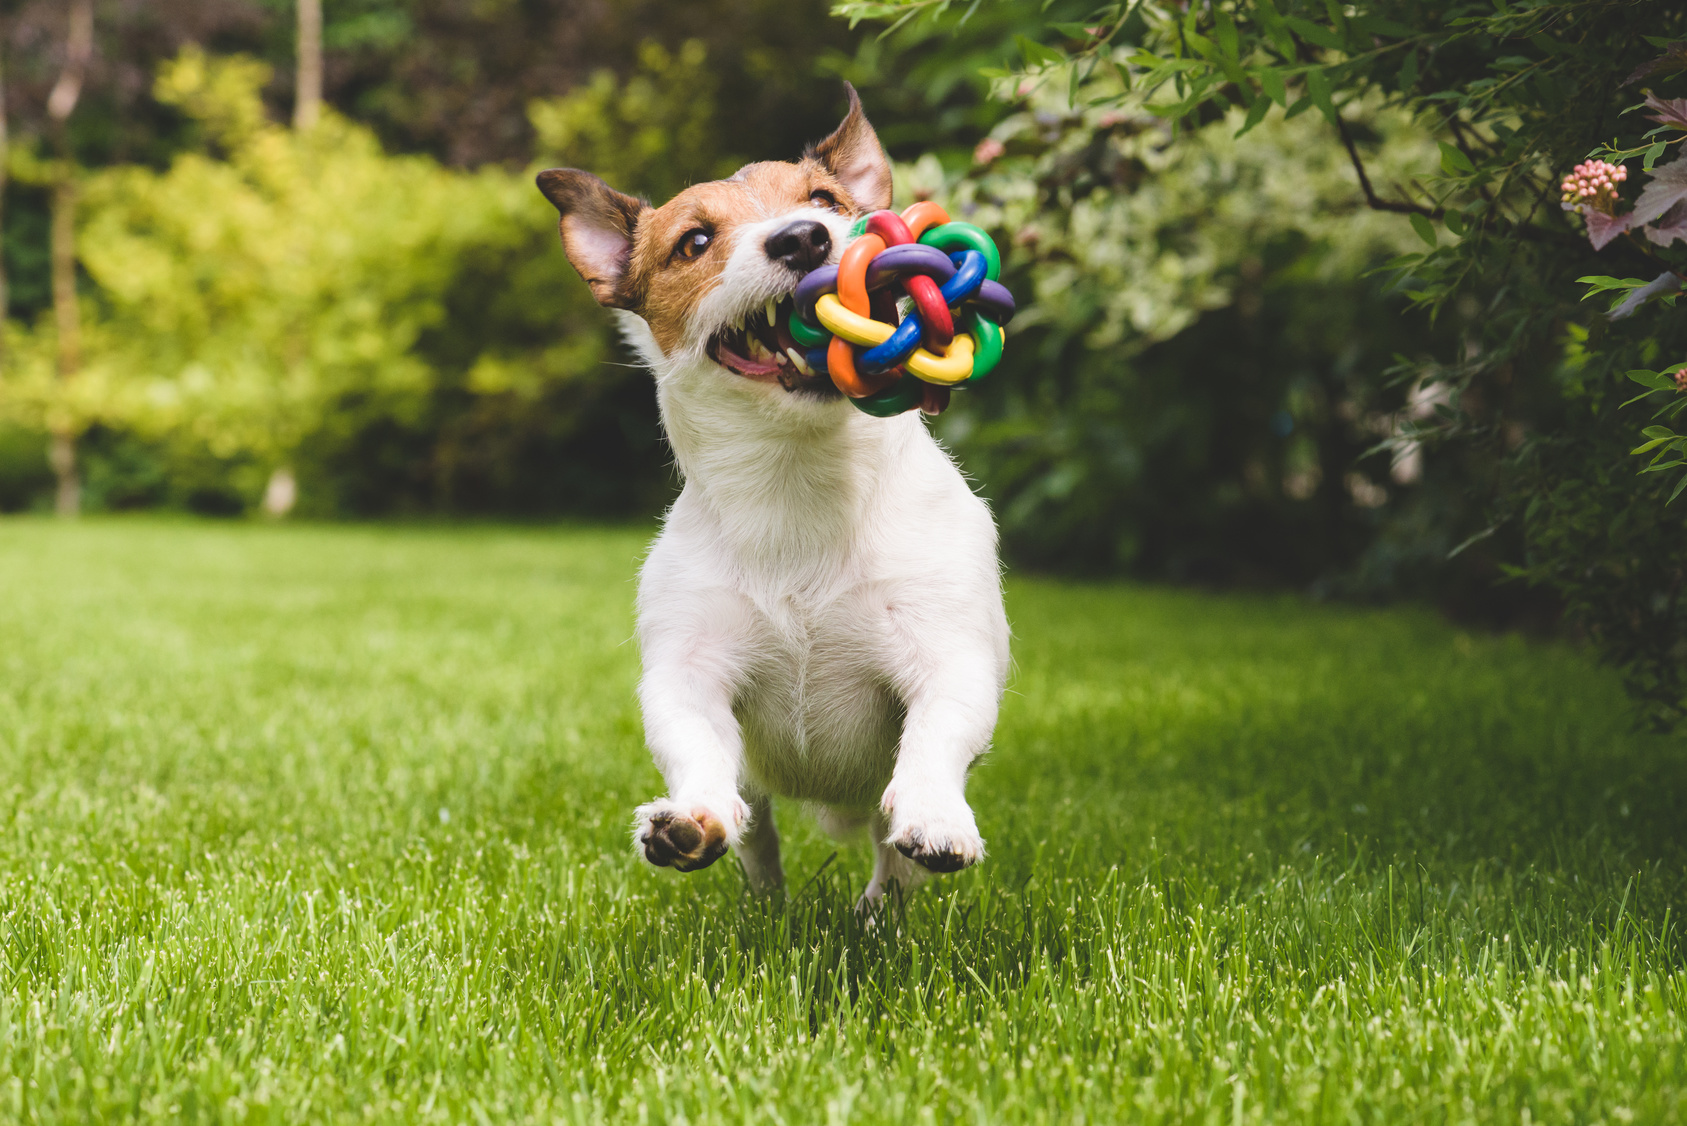 How To Get A Dog To Play With Toys